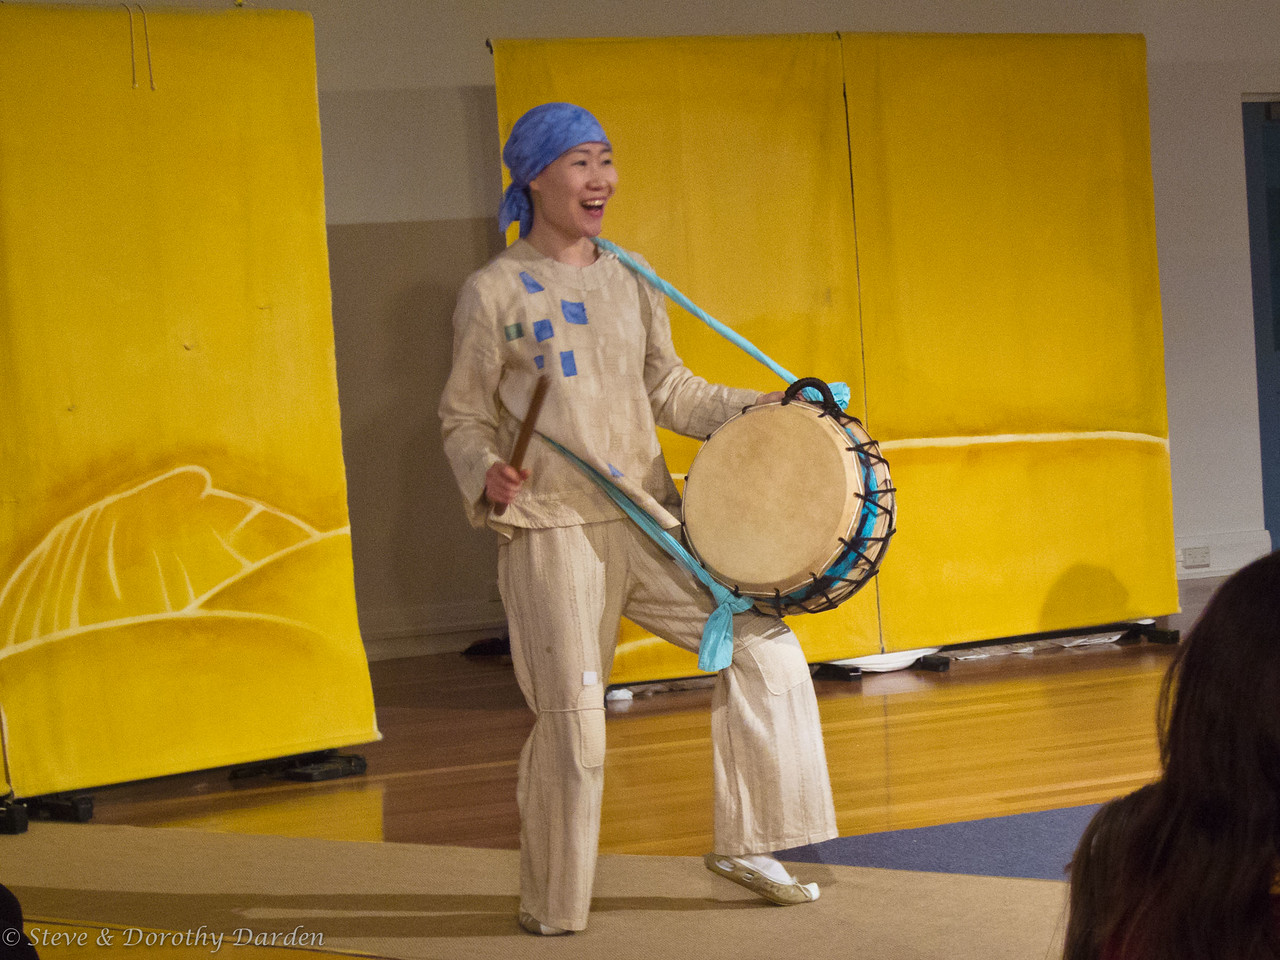 Traditional Korean musical instruments were played.